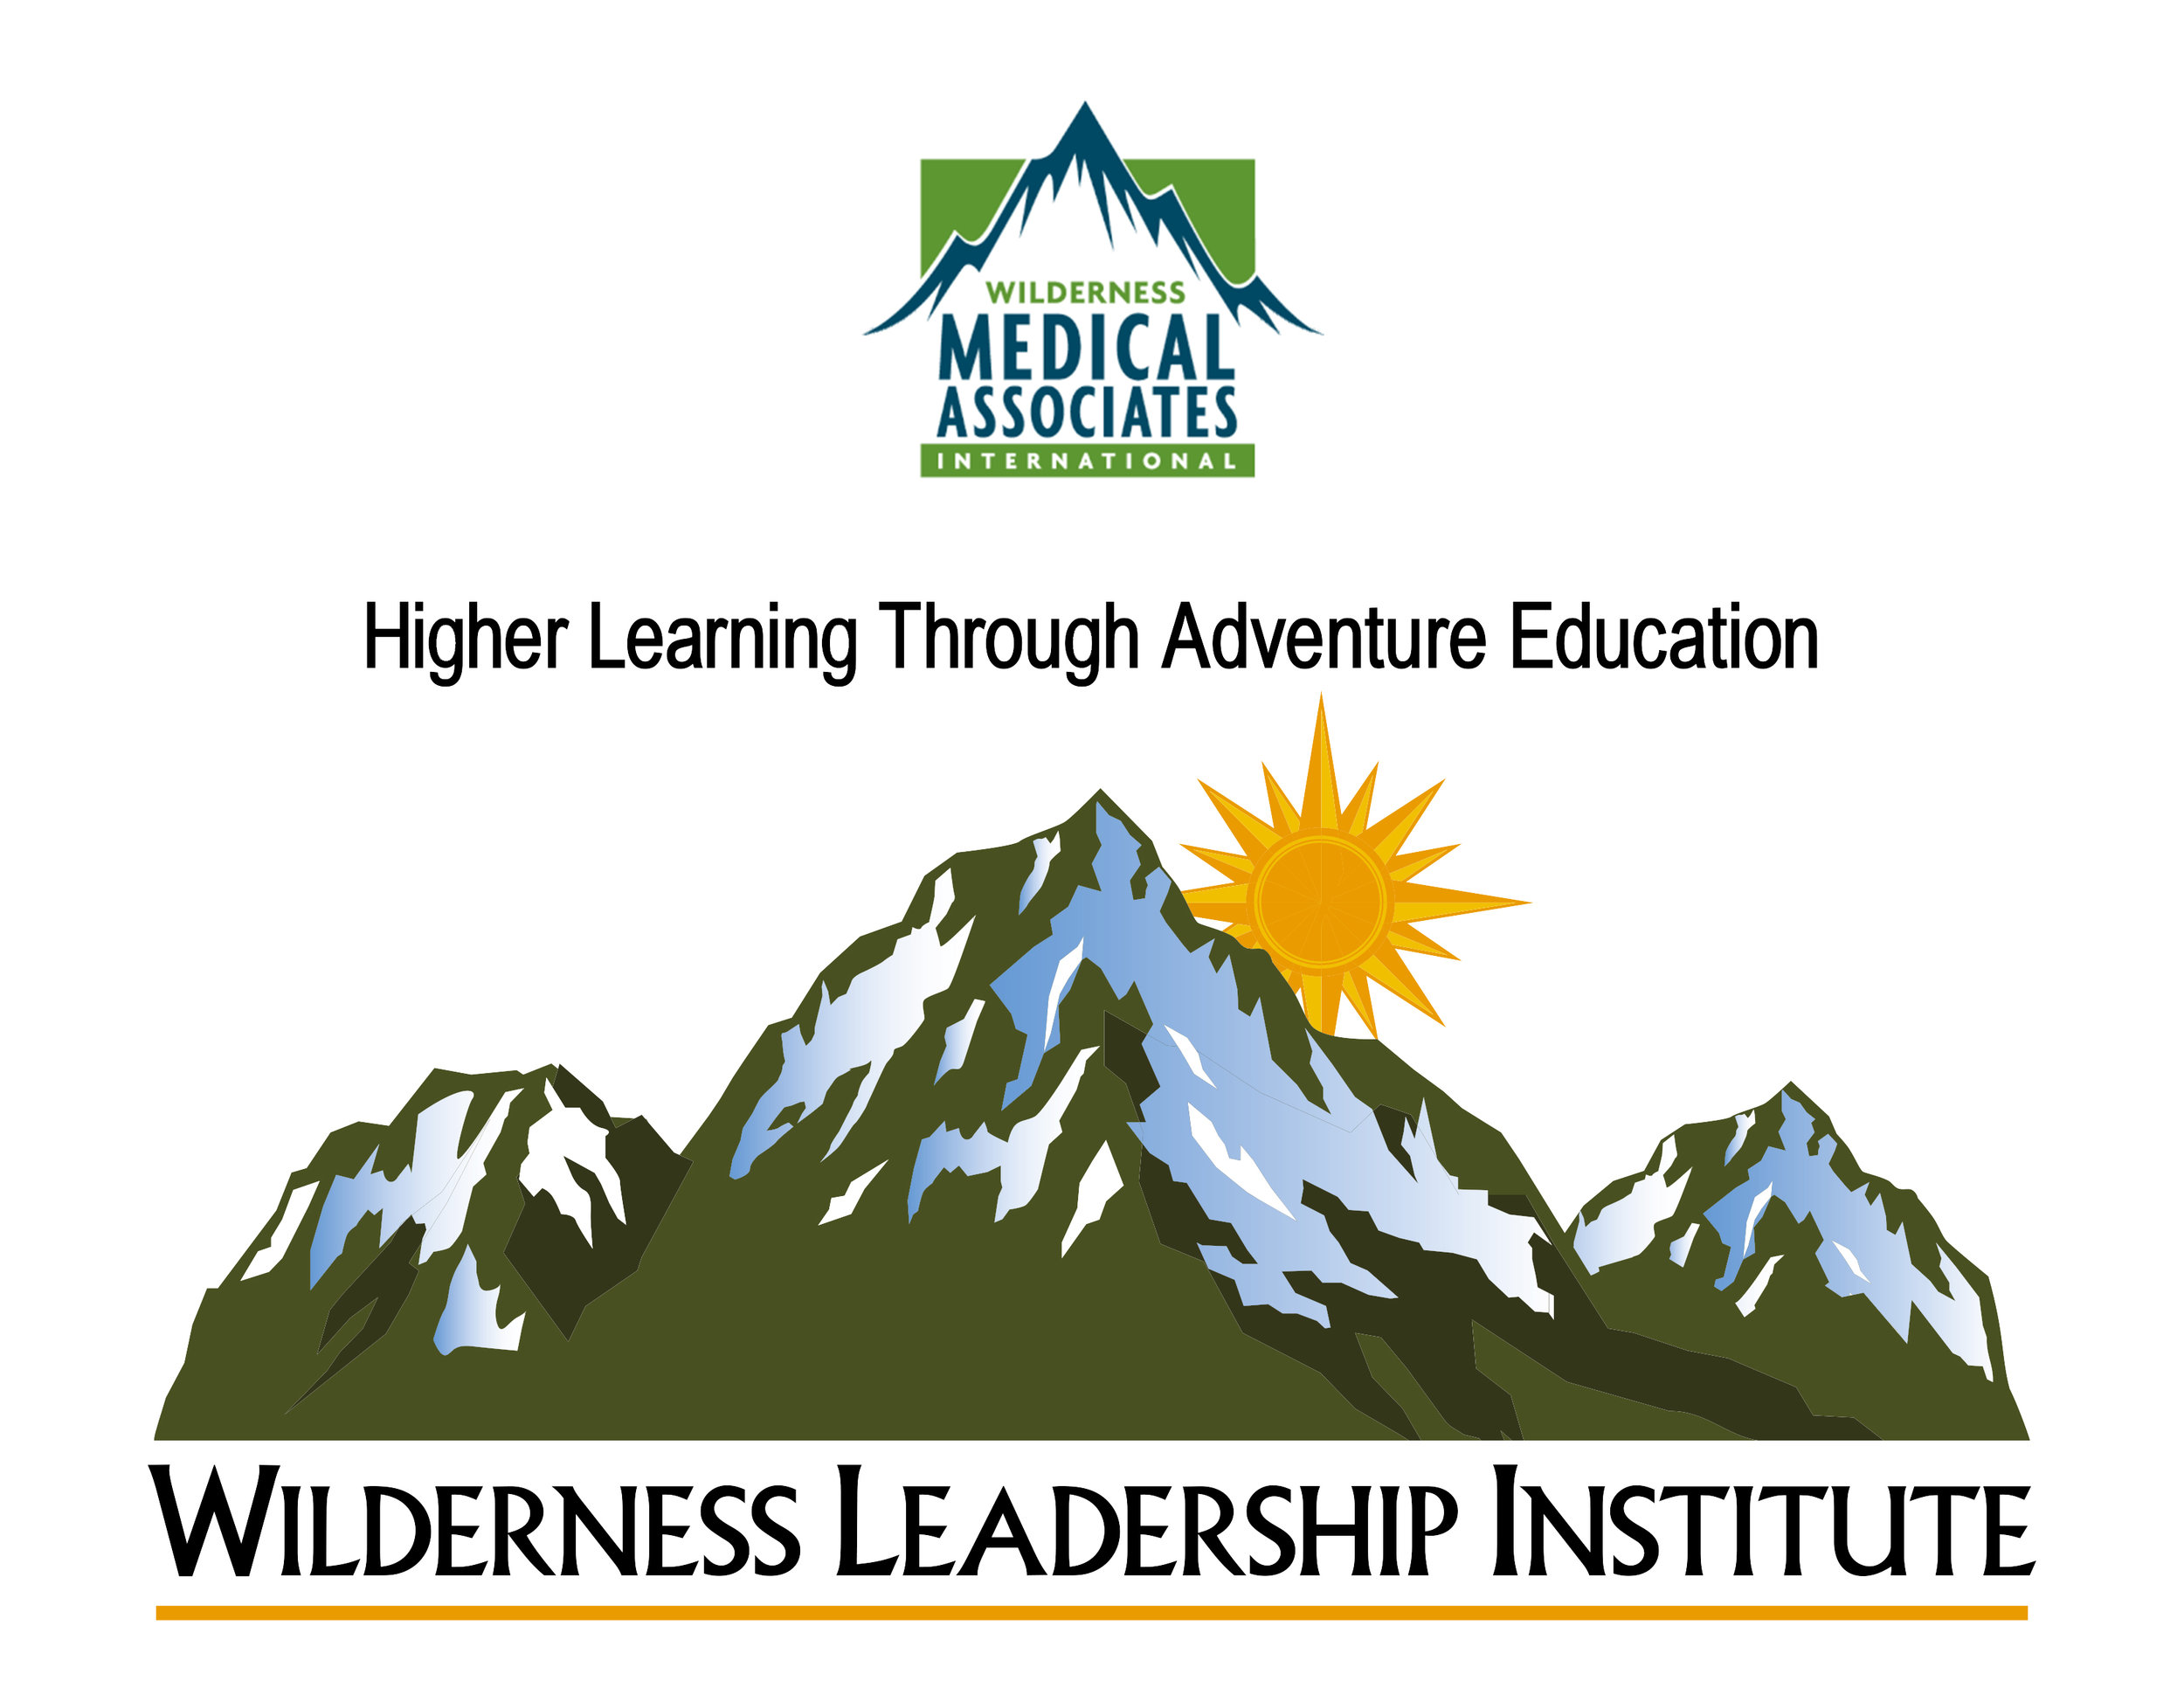 Wilderness First Responder Re-Cert - We will be sponsoring a Wilderness Medical Associates International, 3 day open re-certification through the Wilderness Leadership Institute. Join us 19-21 October